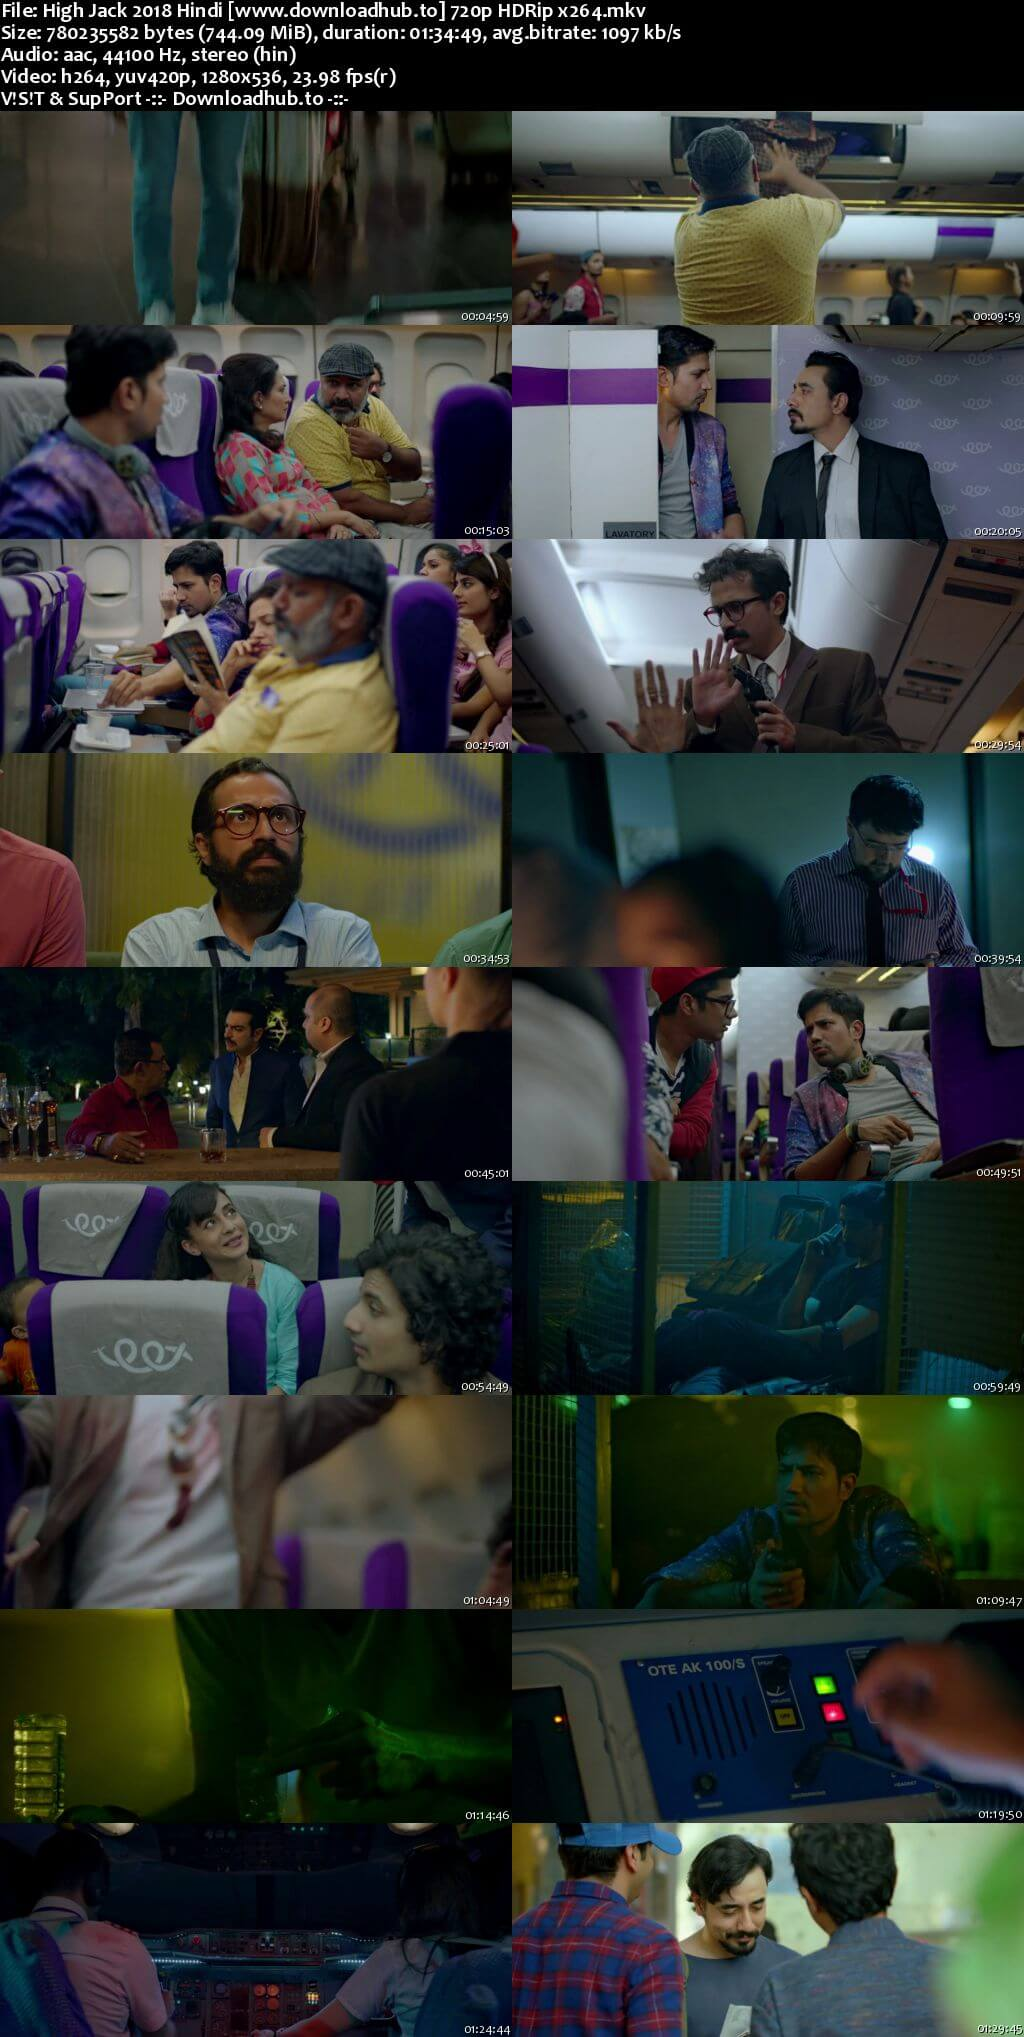 High Jack 2018 Hindi 720p HDRip